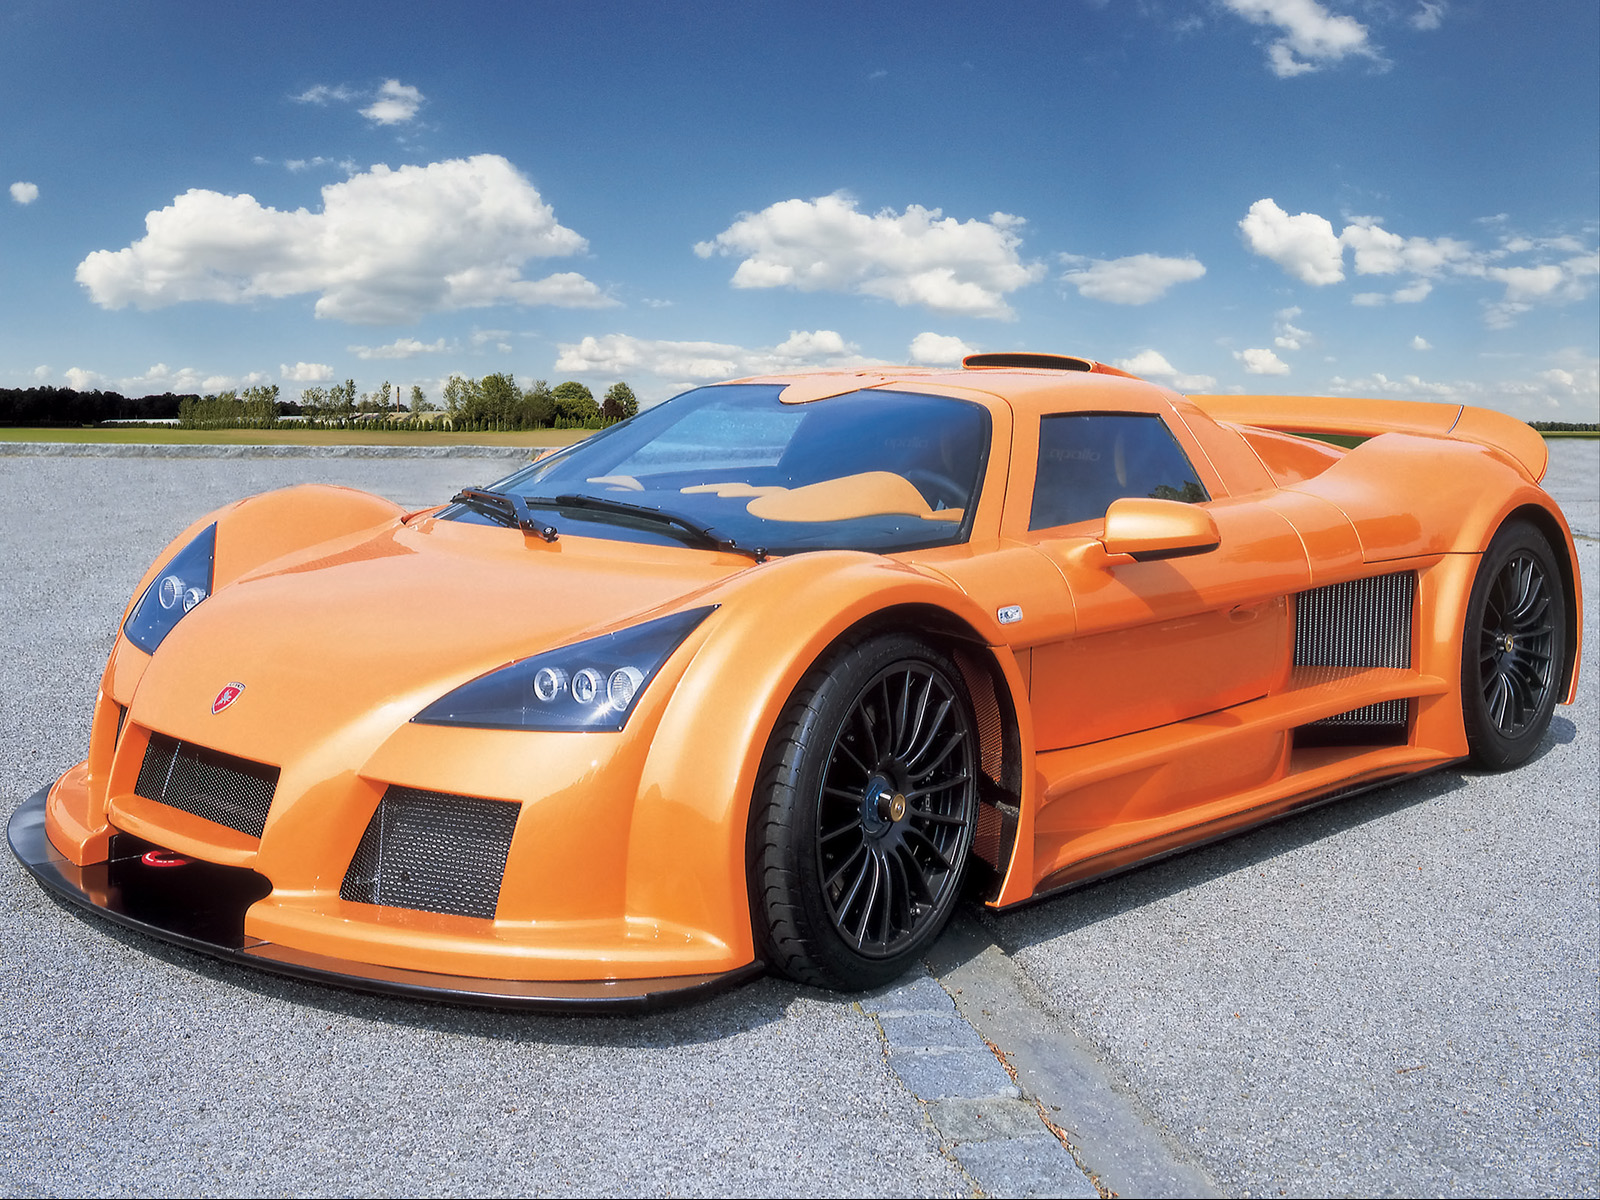 auction results and data for 2007 gumpert apollo sport. Black Bedroom Furniture Sets. Home Design Ideas